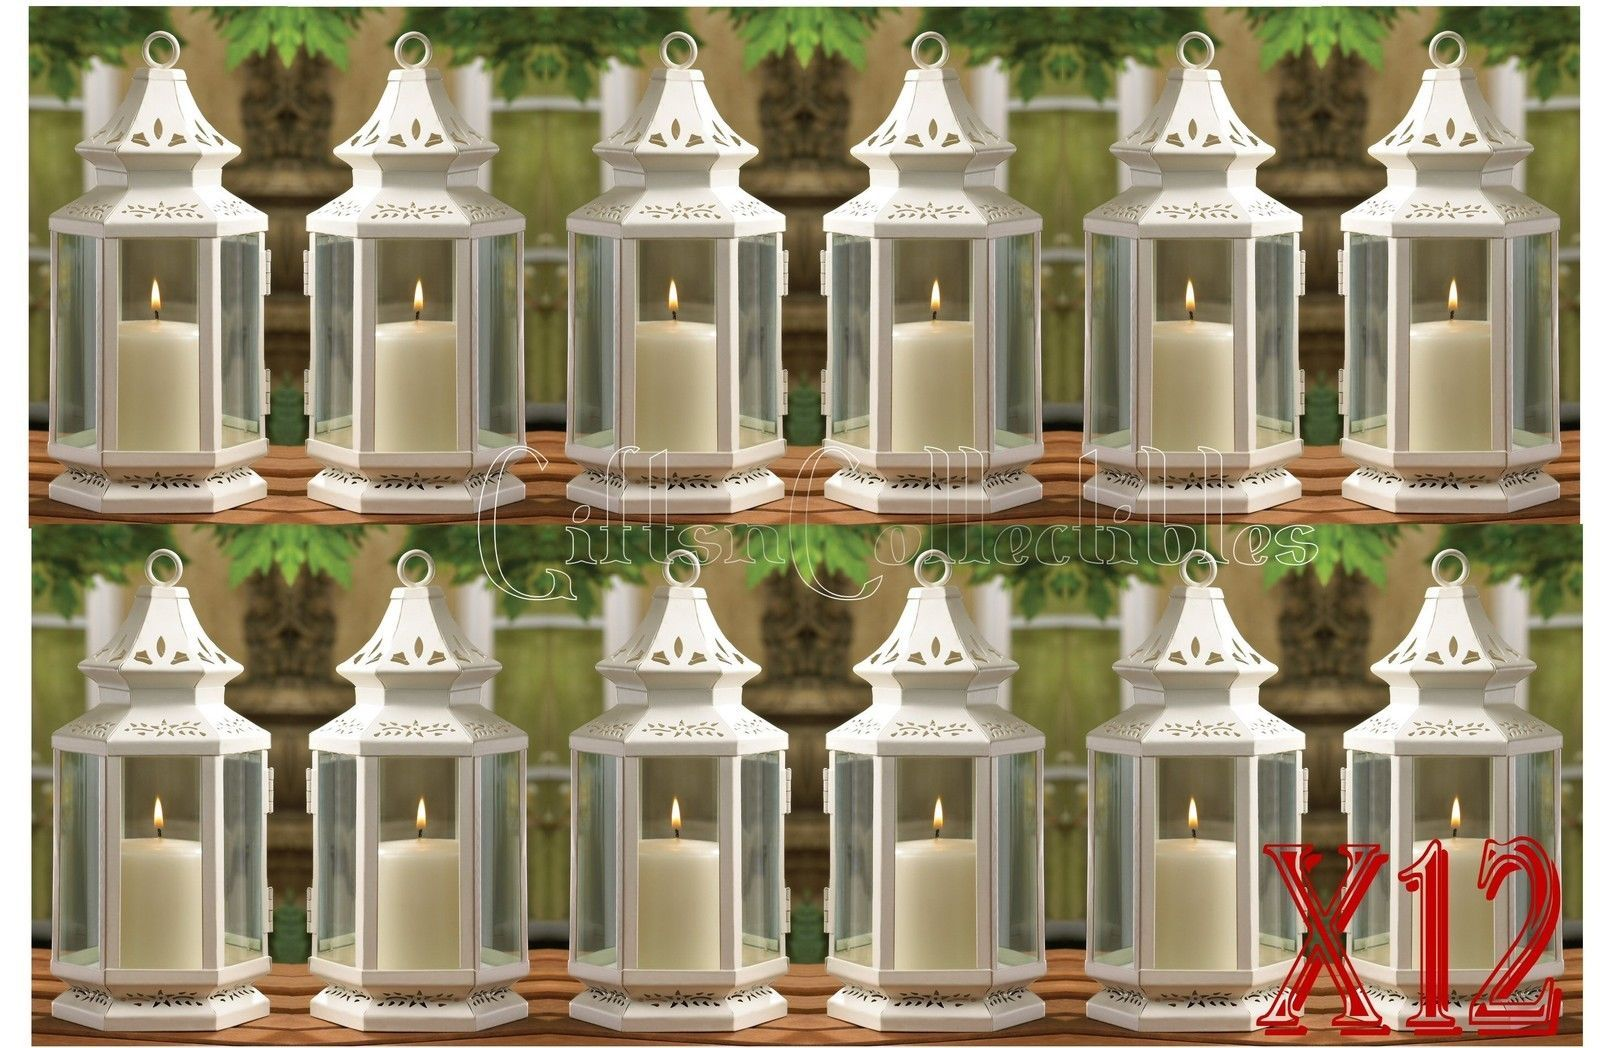 12 Medium White Victorian Style Candle Lanterns Wedding Events Centerpieces 10.5